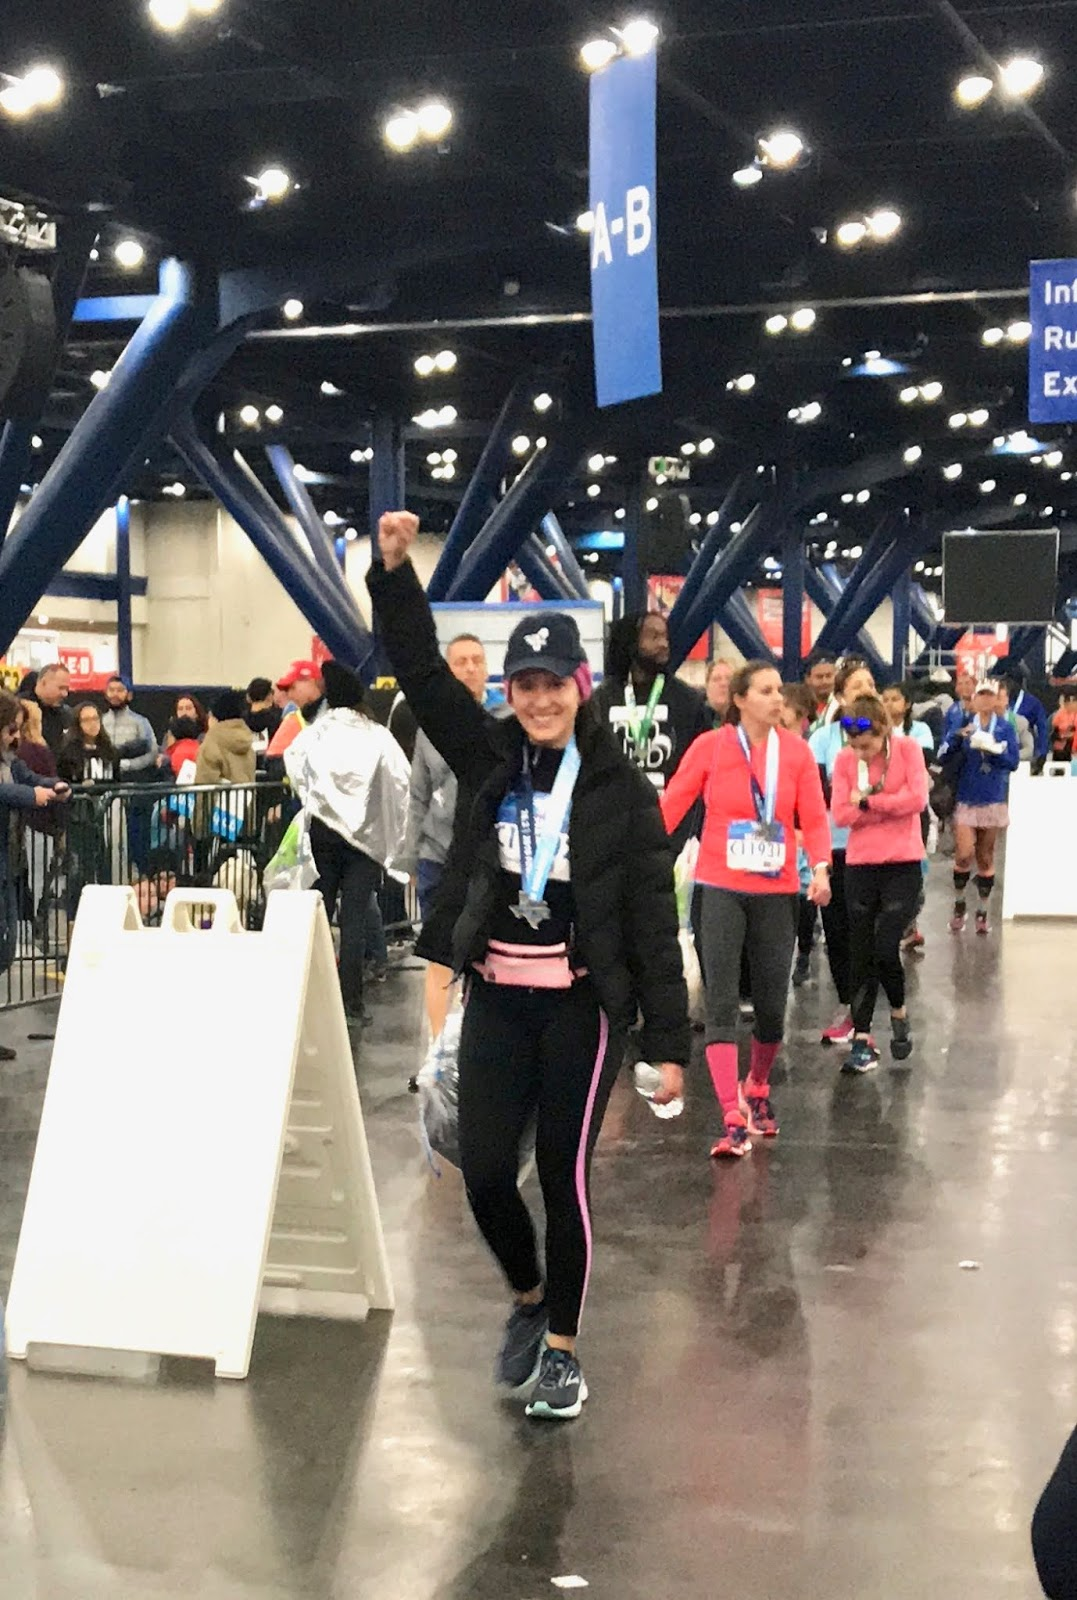 I ran my first Marathon! Chevron Houston Marathon 2019